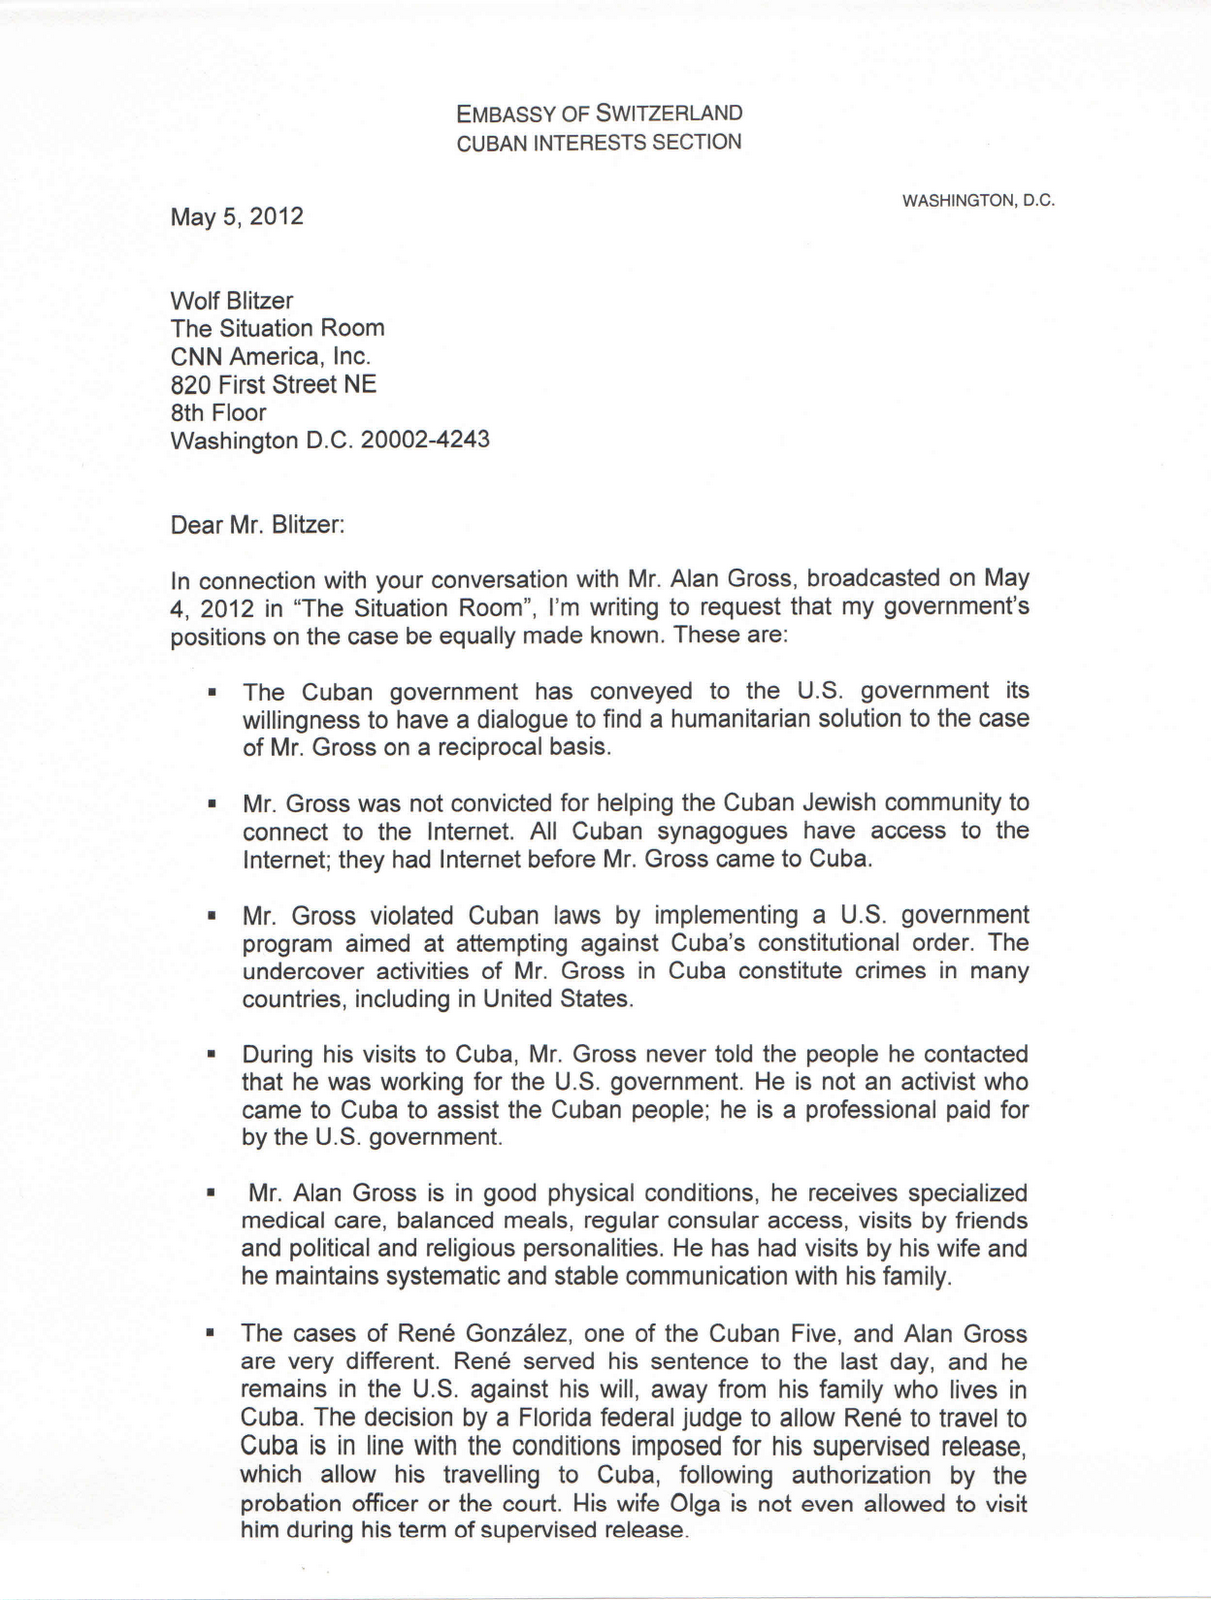 Cuba journal may 2012 letter of cuban interests section chief to cnns wolf blitzer stopboris Gallery